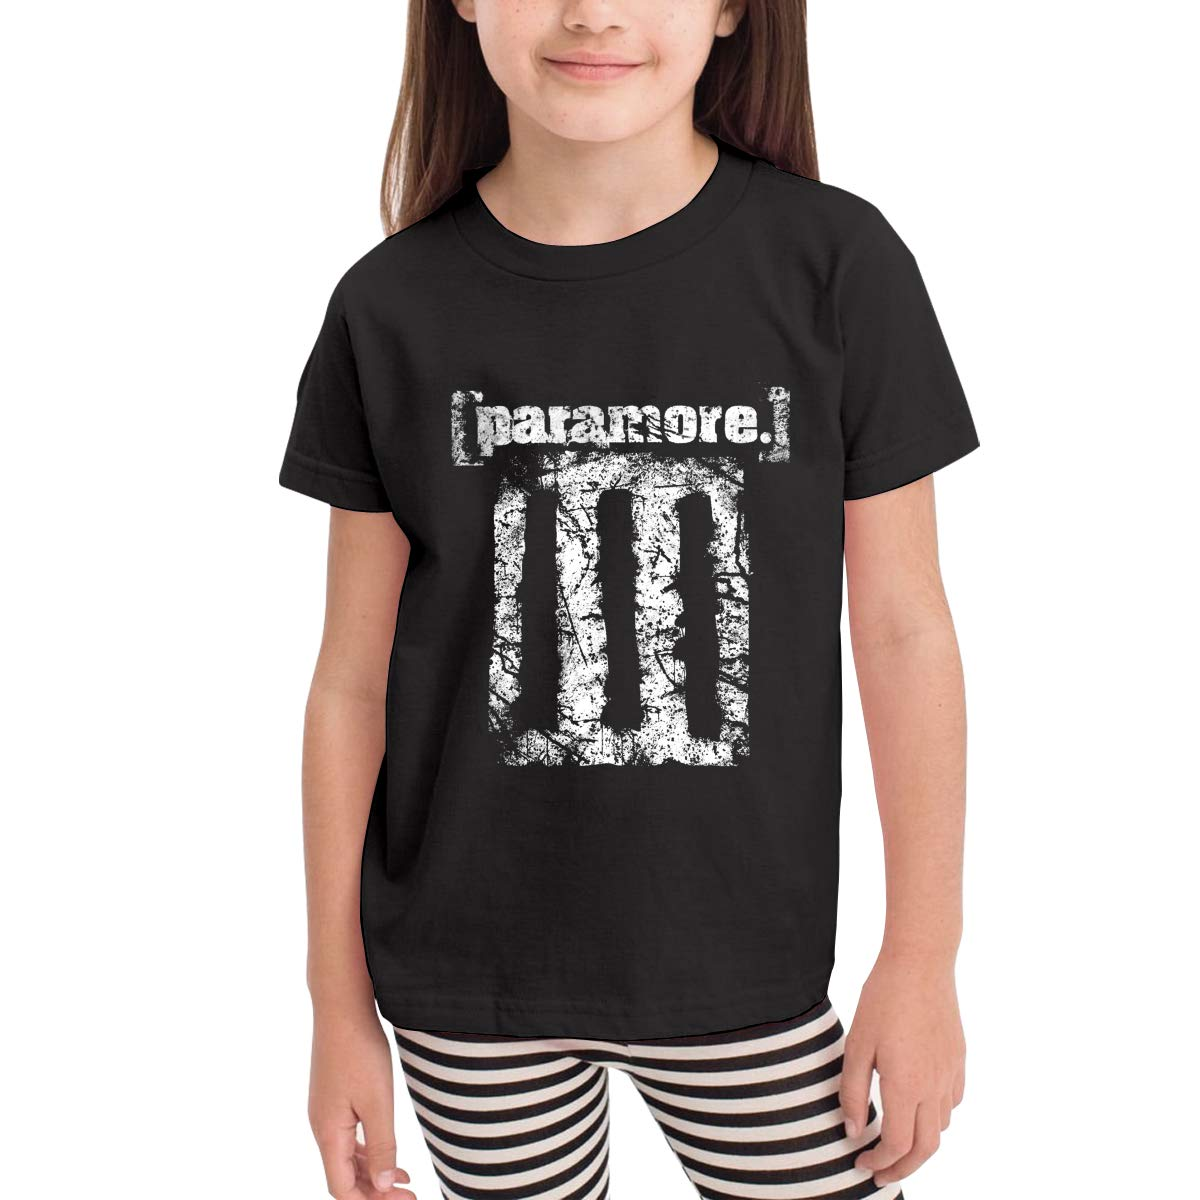 Onlybabycare Paramore Singles Club 100/% Cotton Toddler Baby Boys Girls Kids Short Sleeve T Shirt Top Tee Clothes 2-6 T